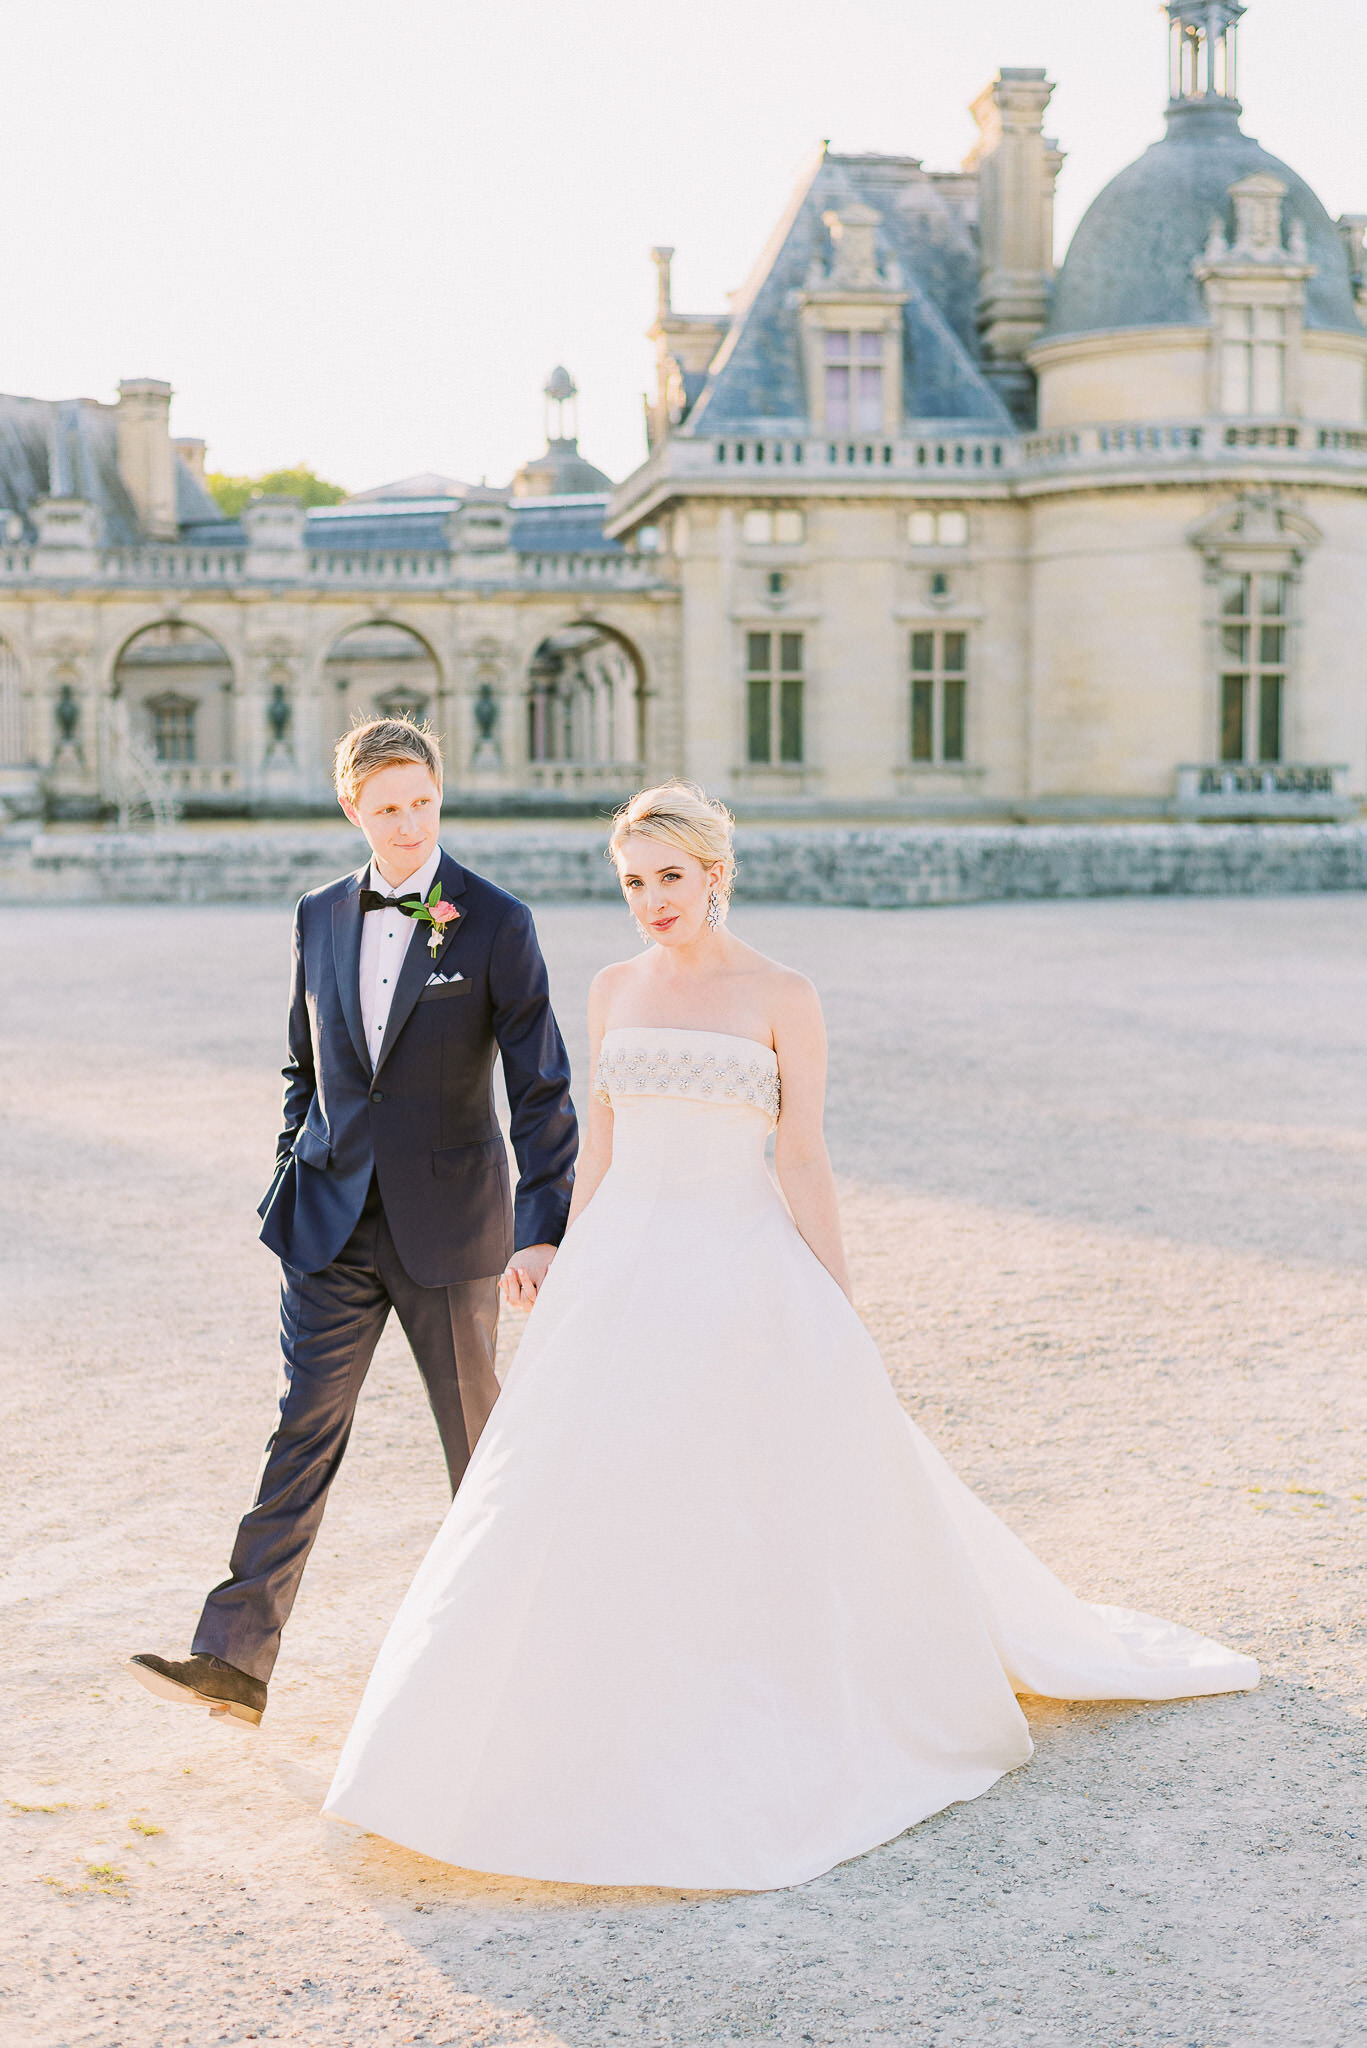 wedding in France Chateau Chantilly